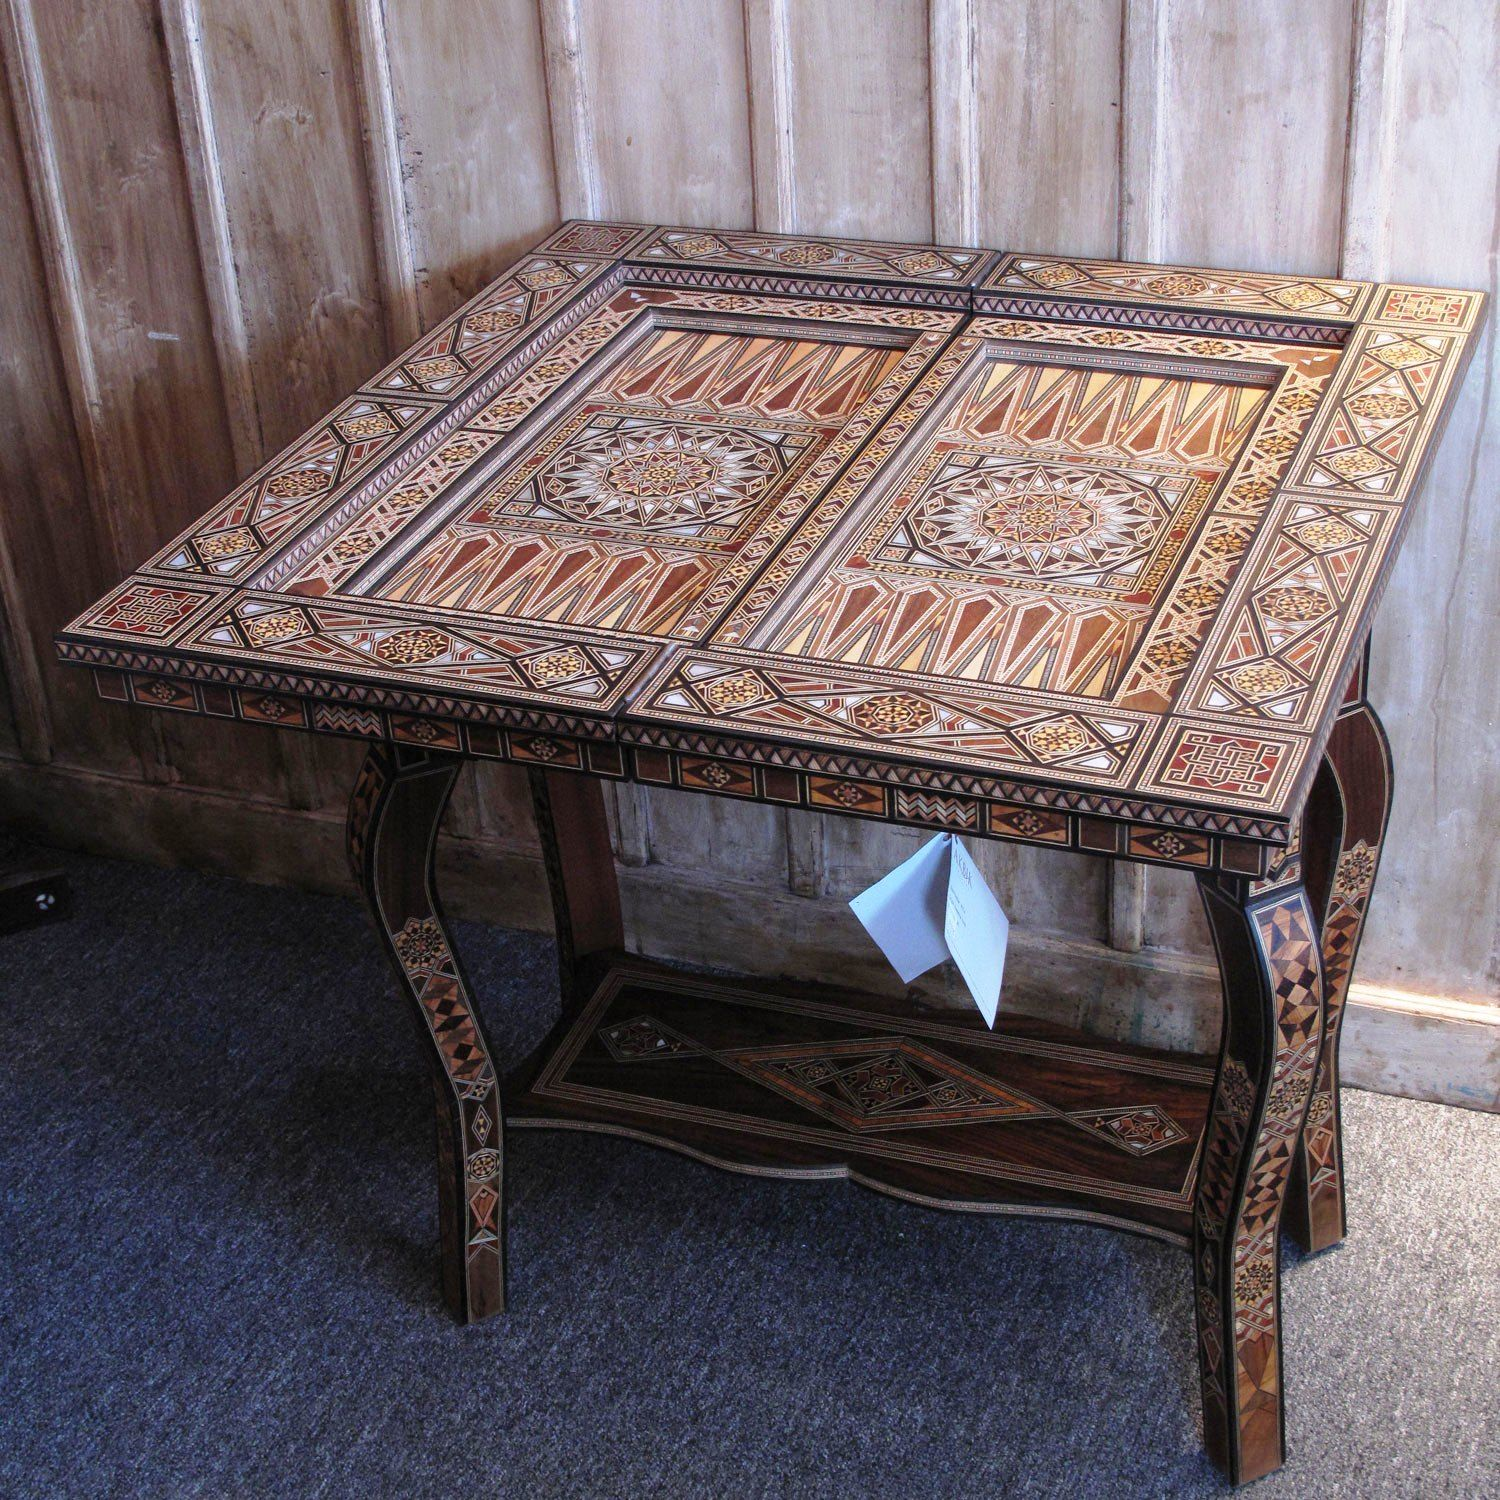 show details for style 1141 marvelous syrian mosaic game table